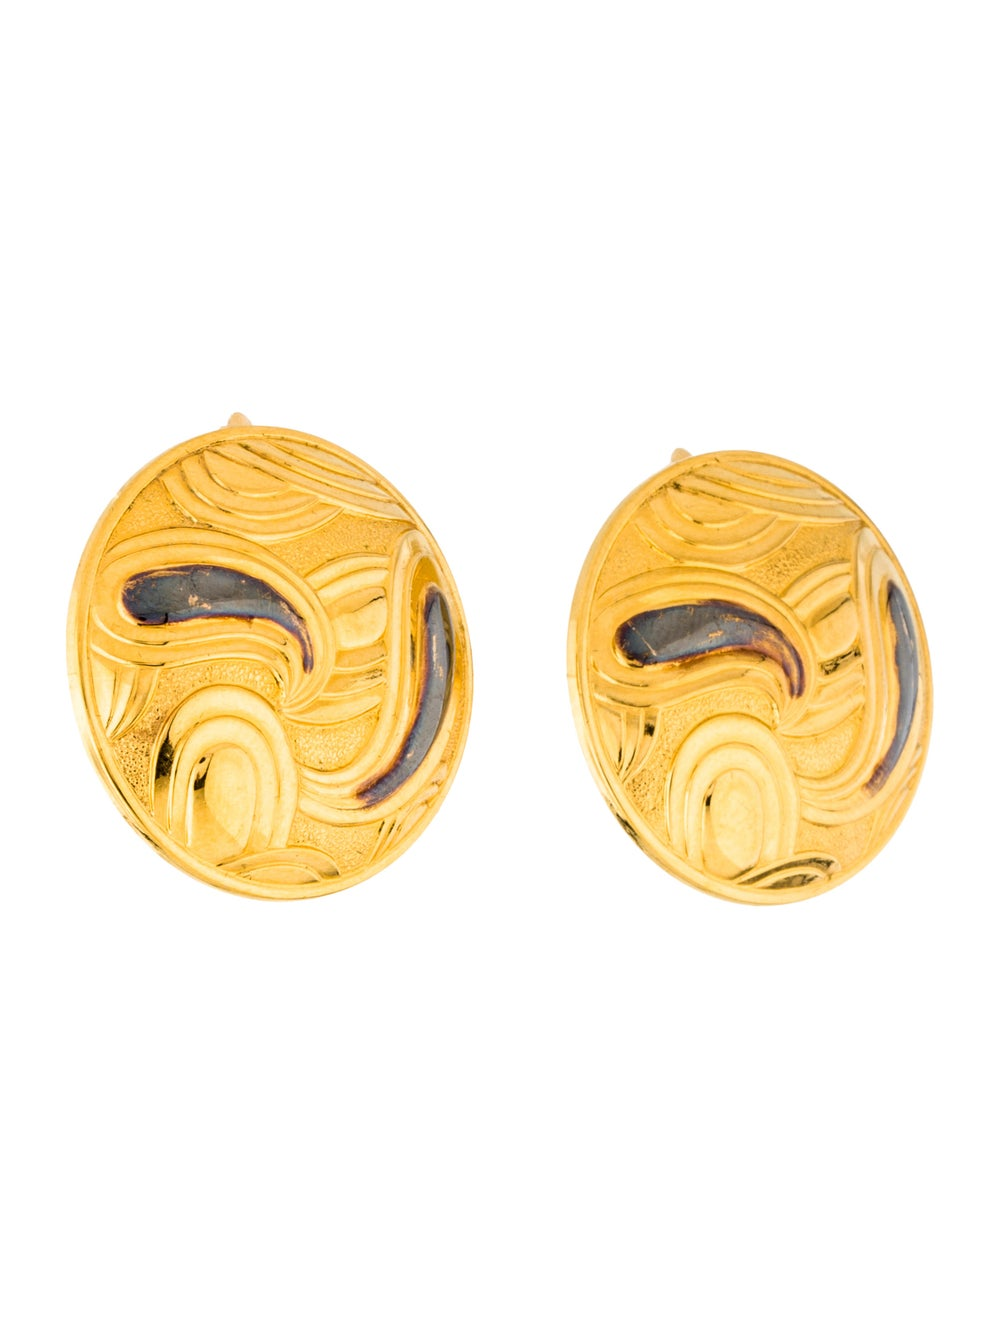 Lanvin Vintage Paisley Clip-On Earrings Gold - image 3